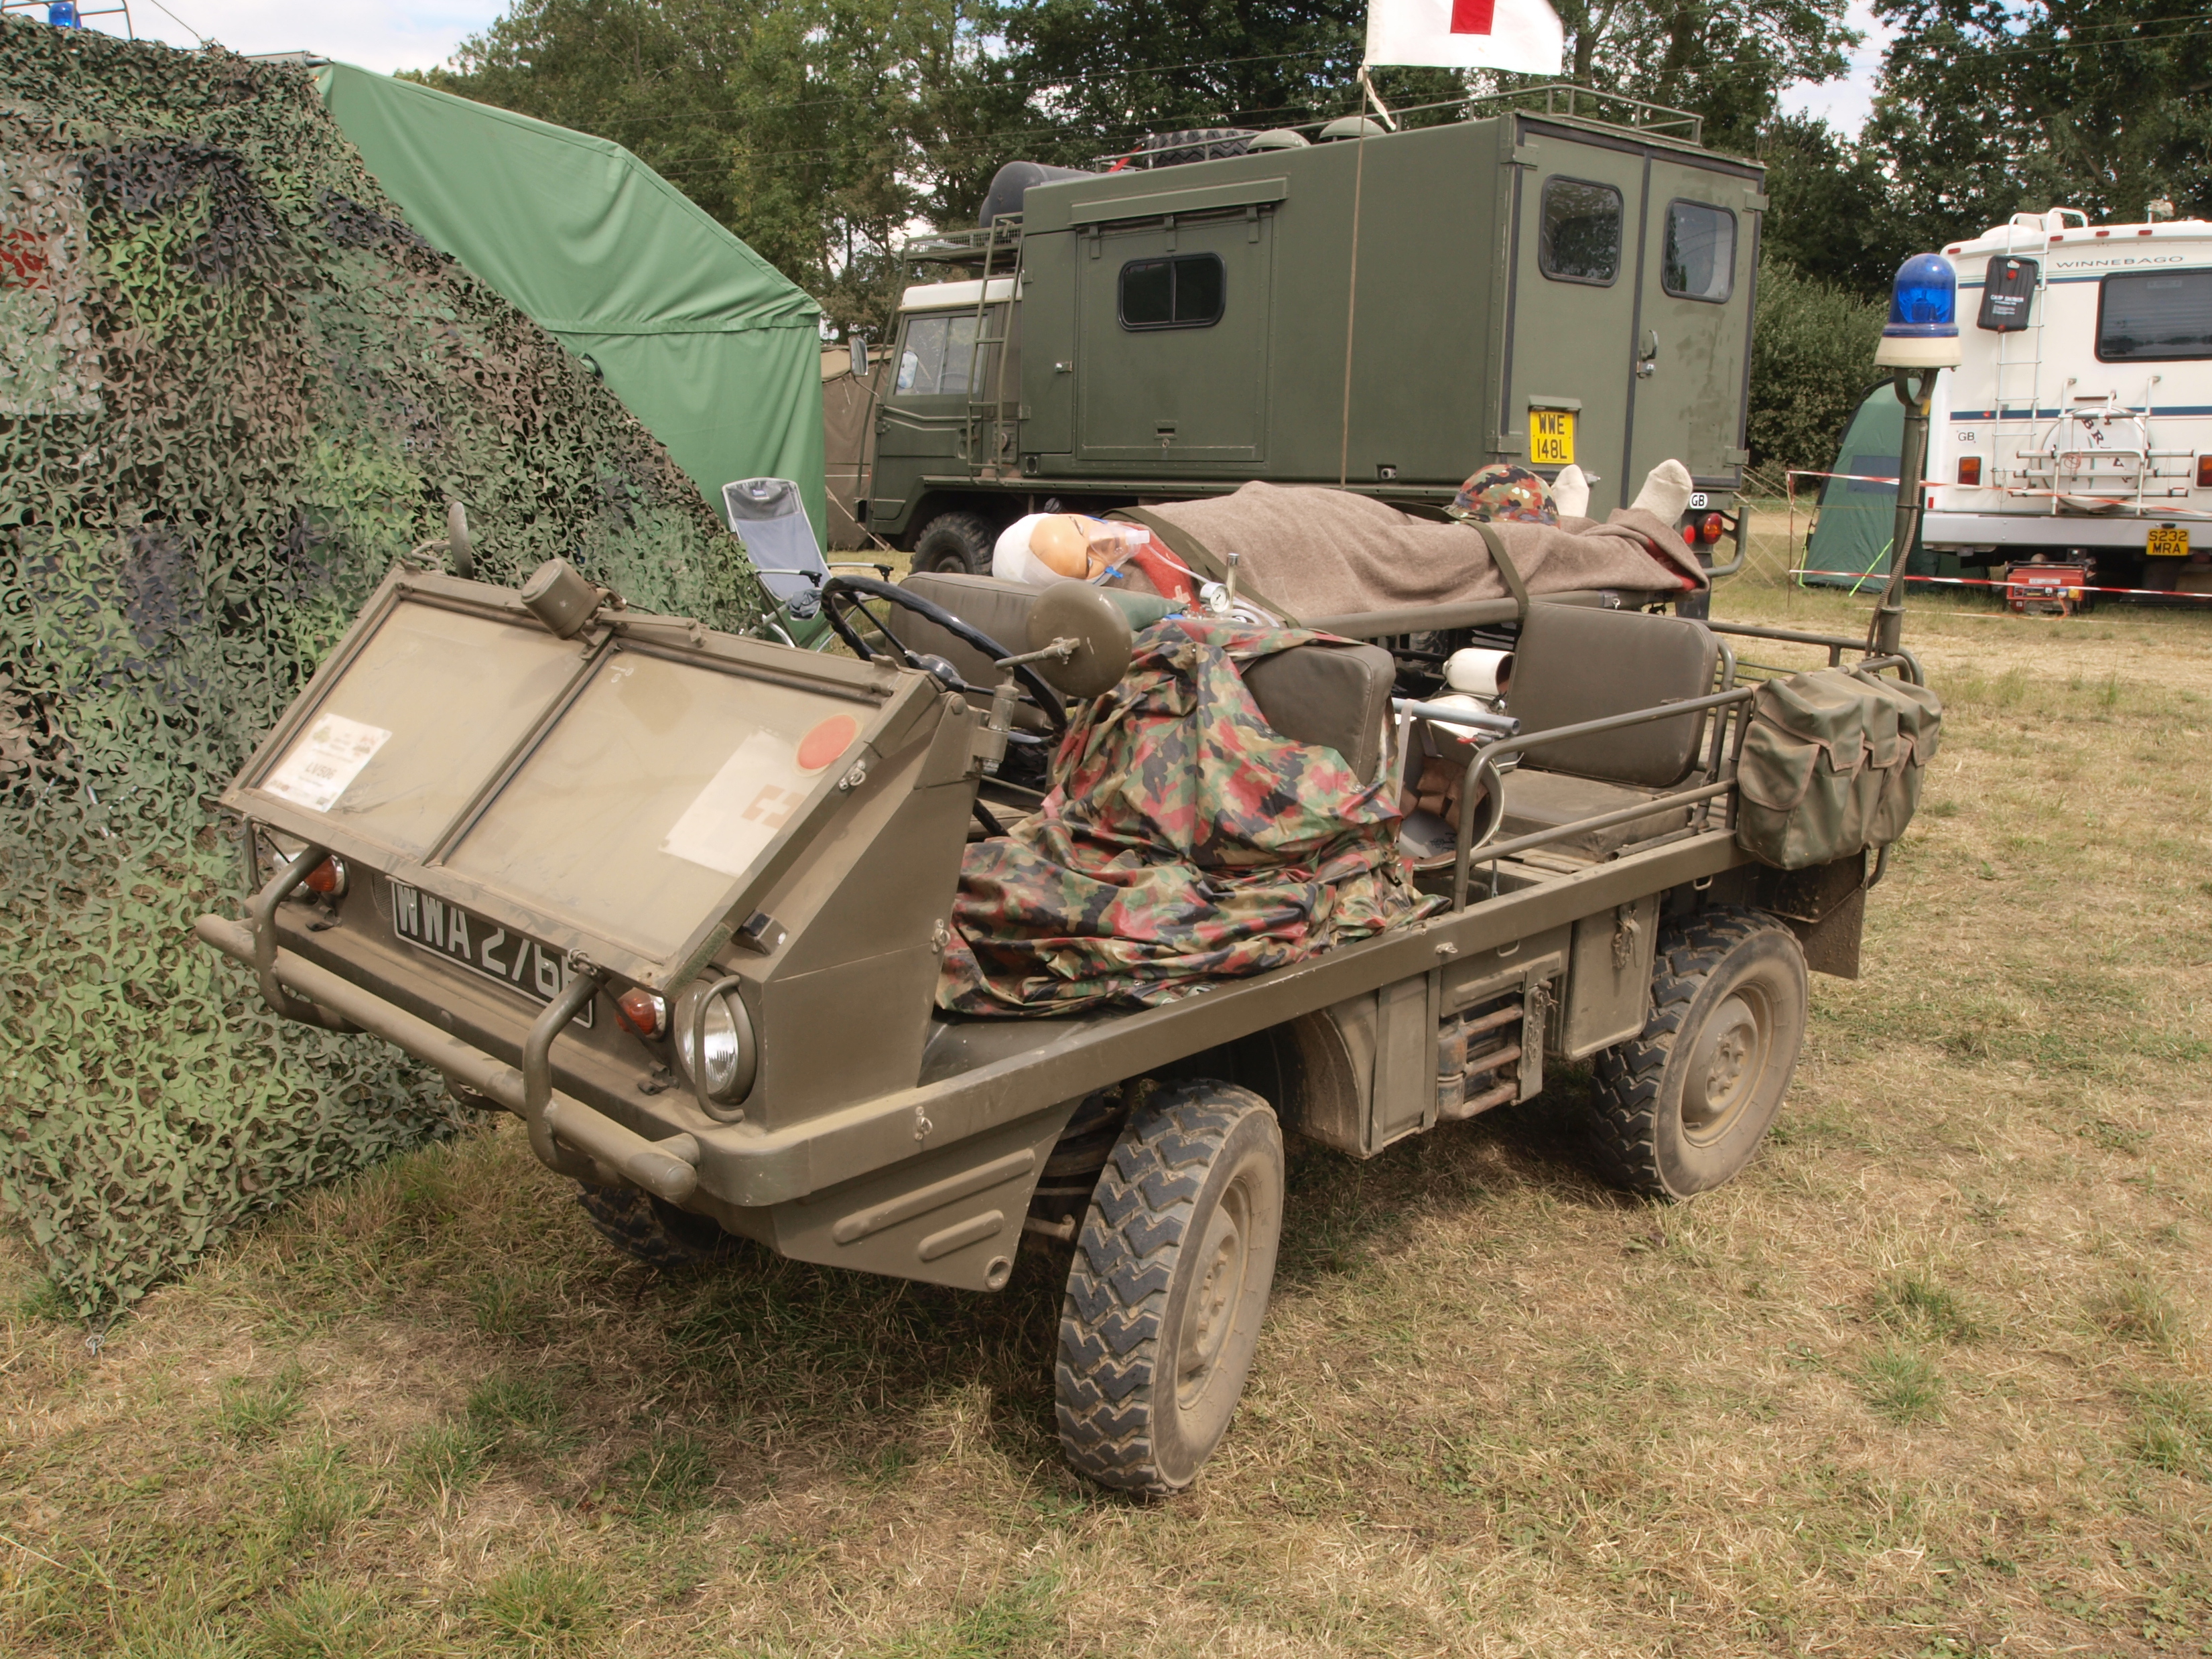 Steyr_Puch_Haflinger_(1968)_owned_by_Pet